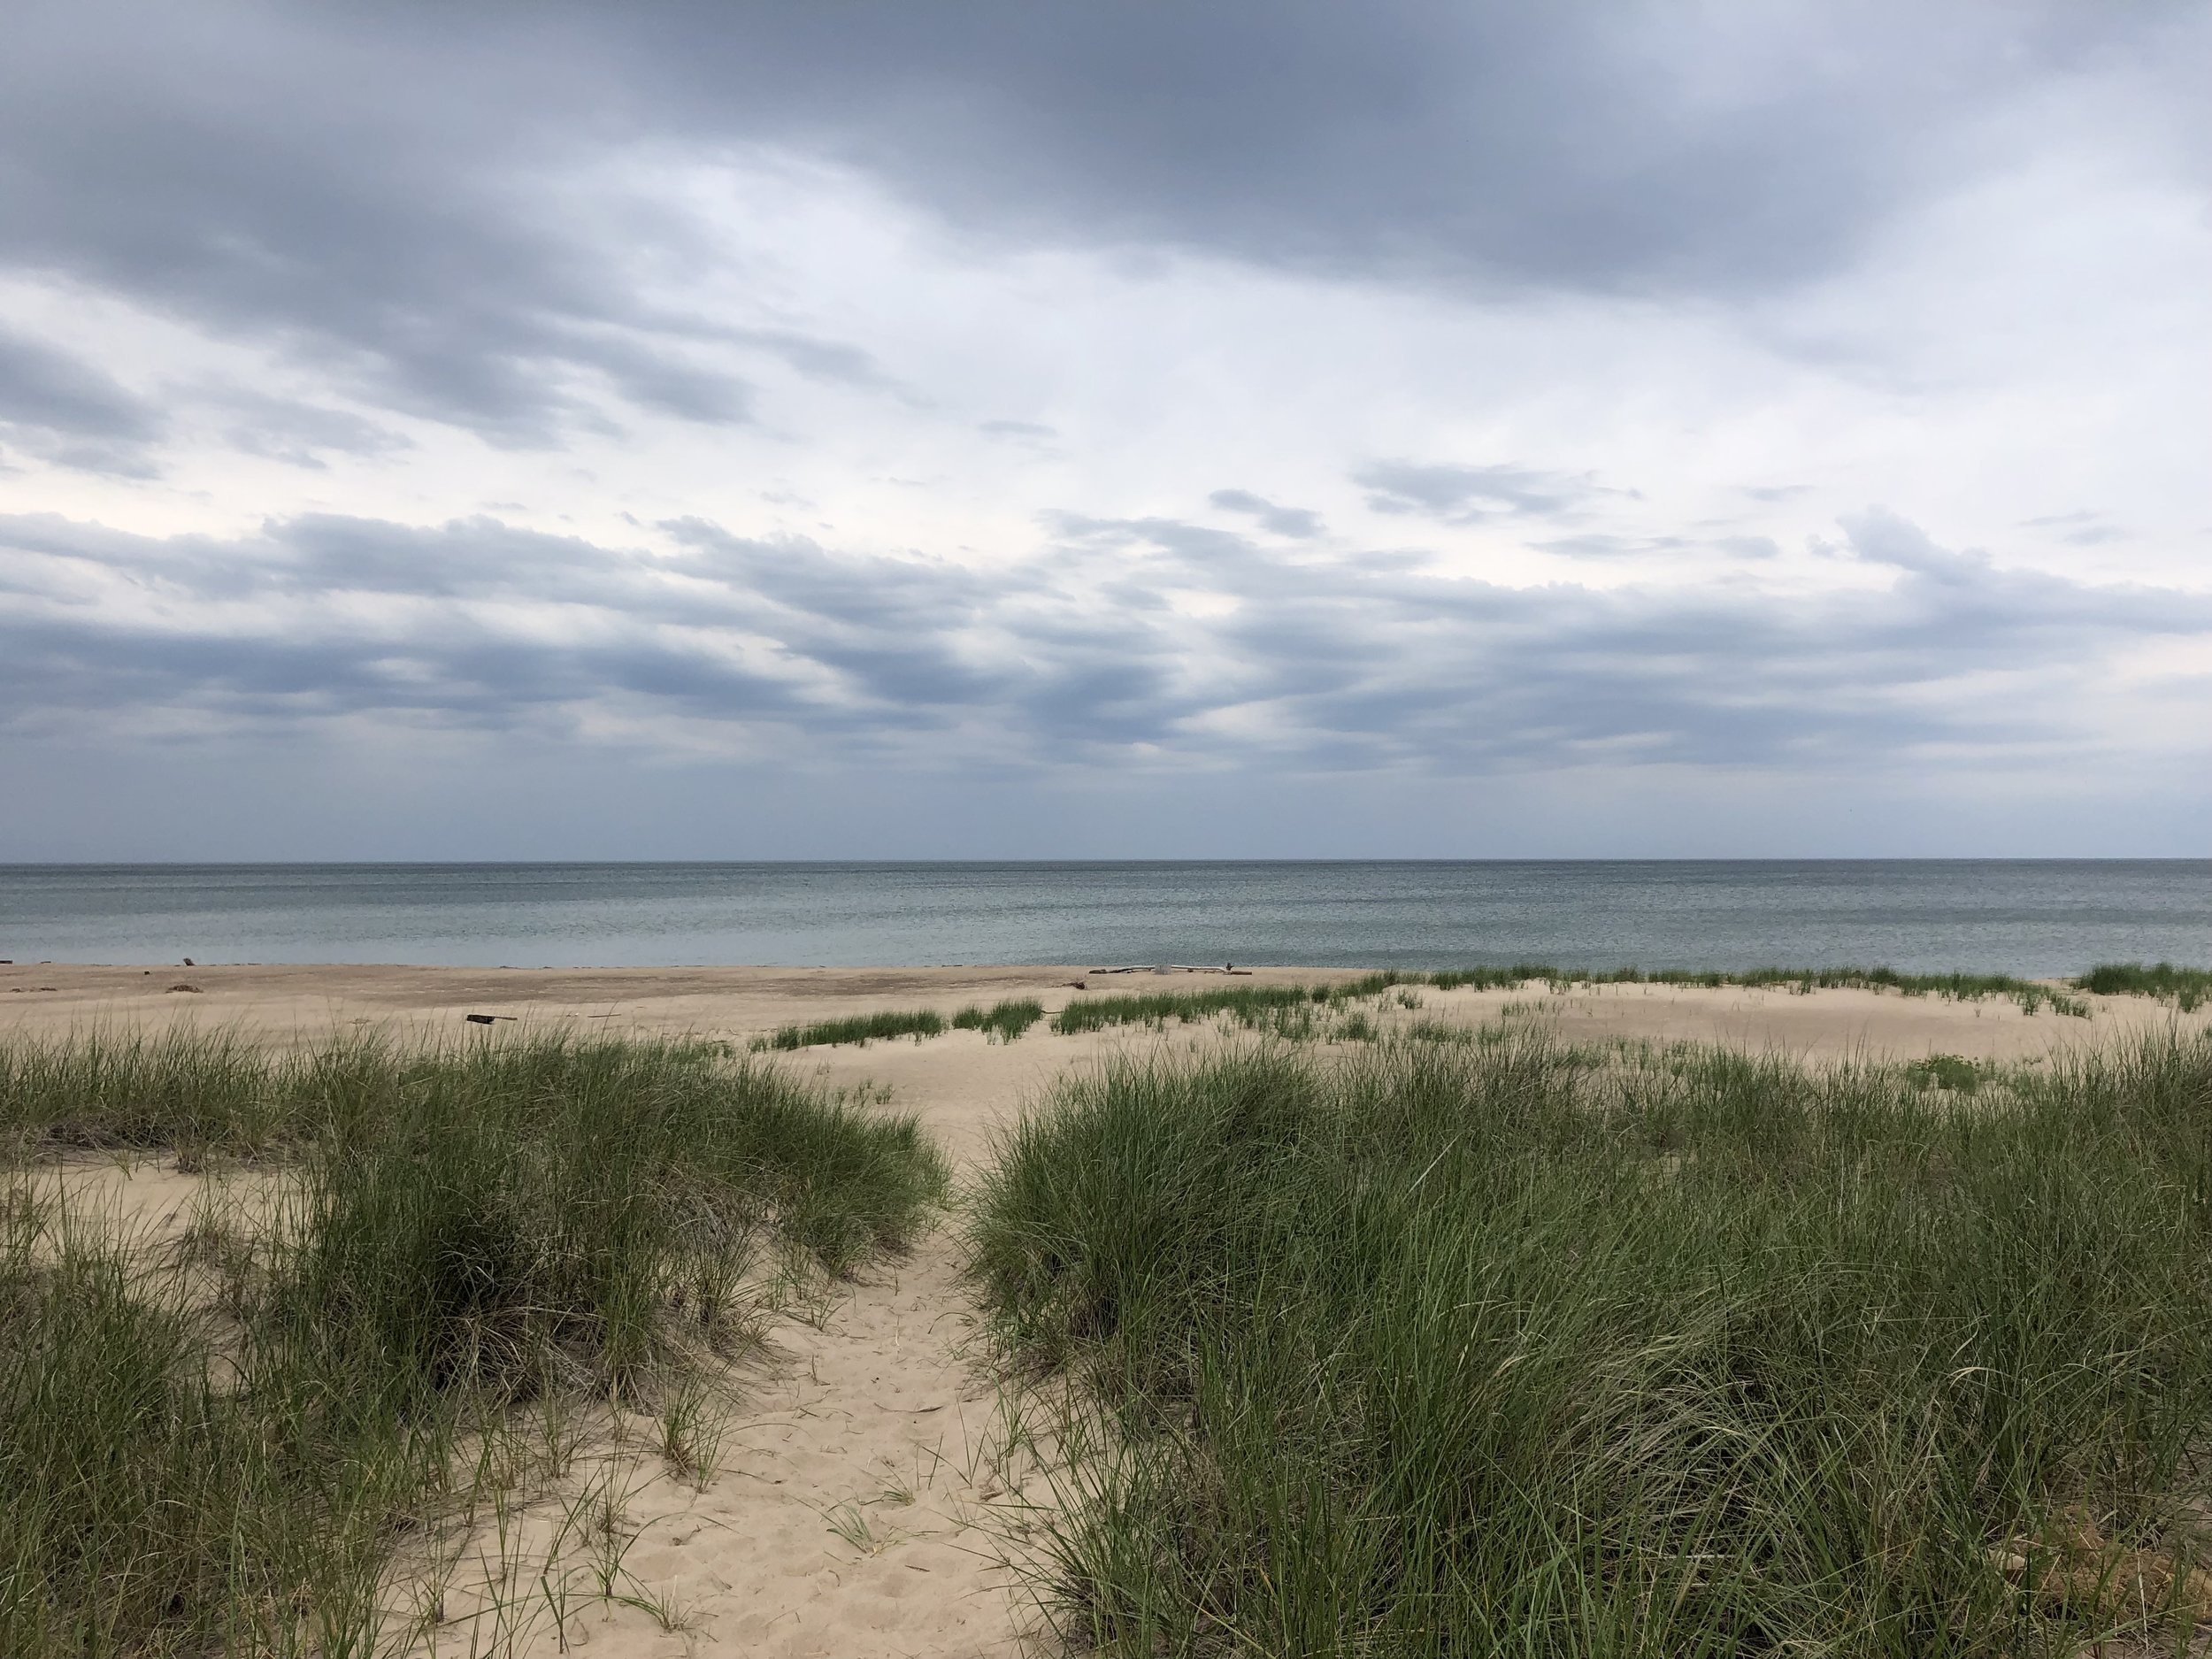 Sand, dune grass, Lake Michigan with clouds